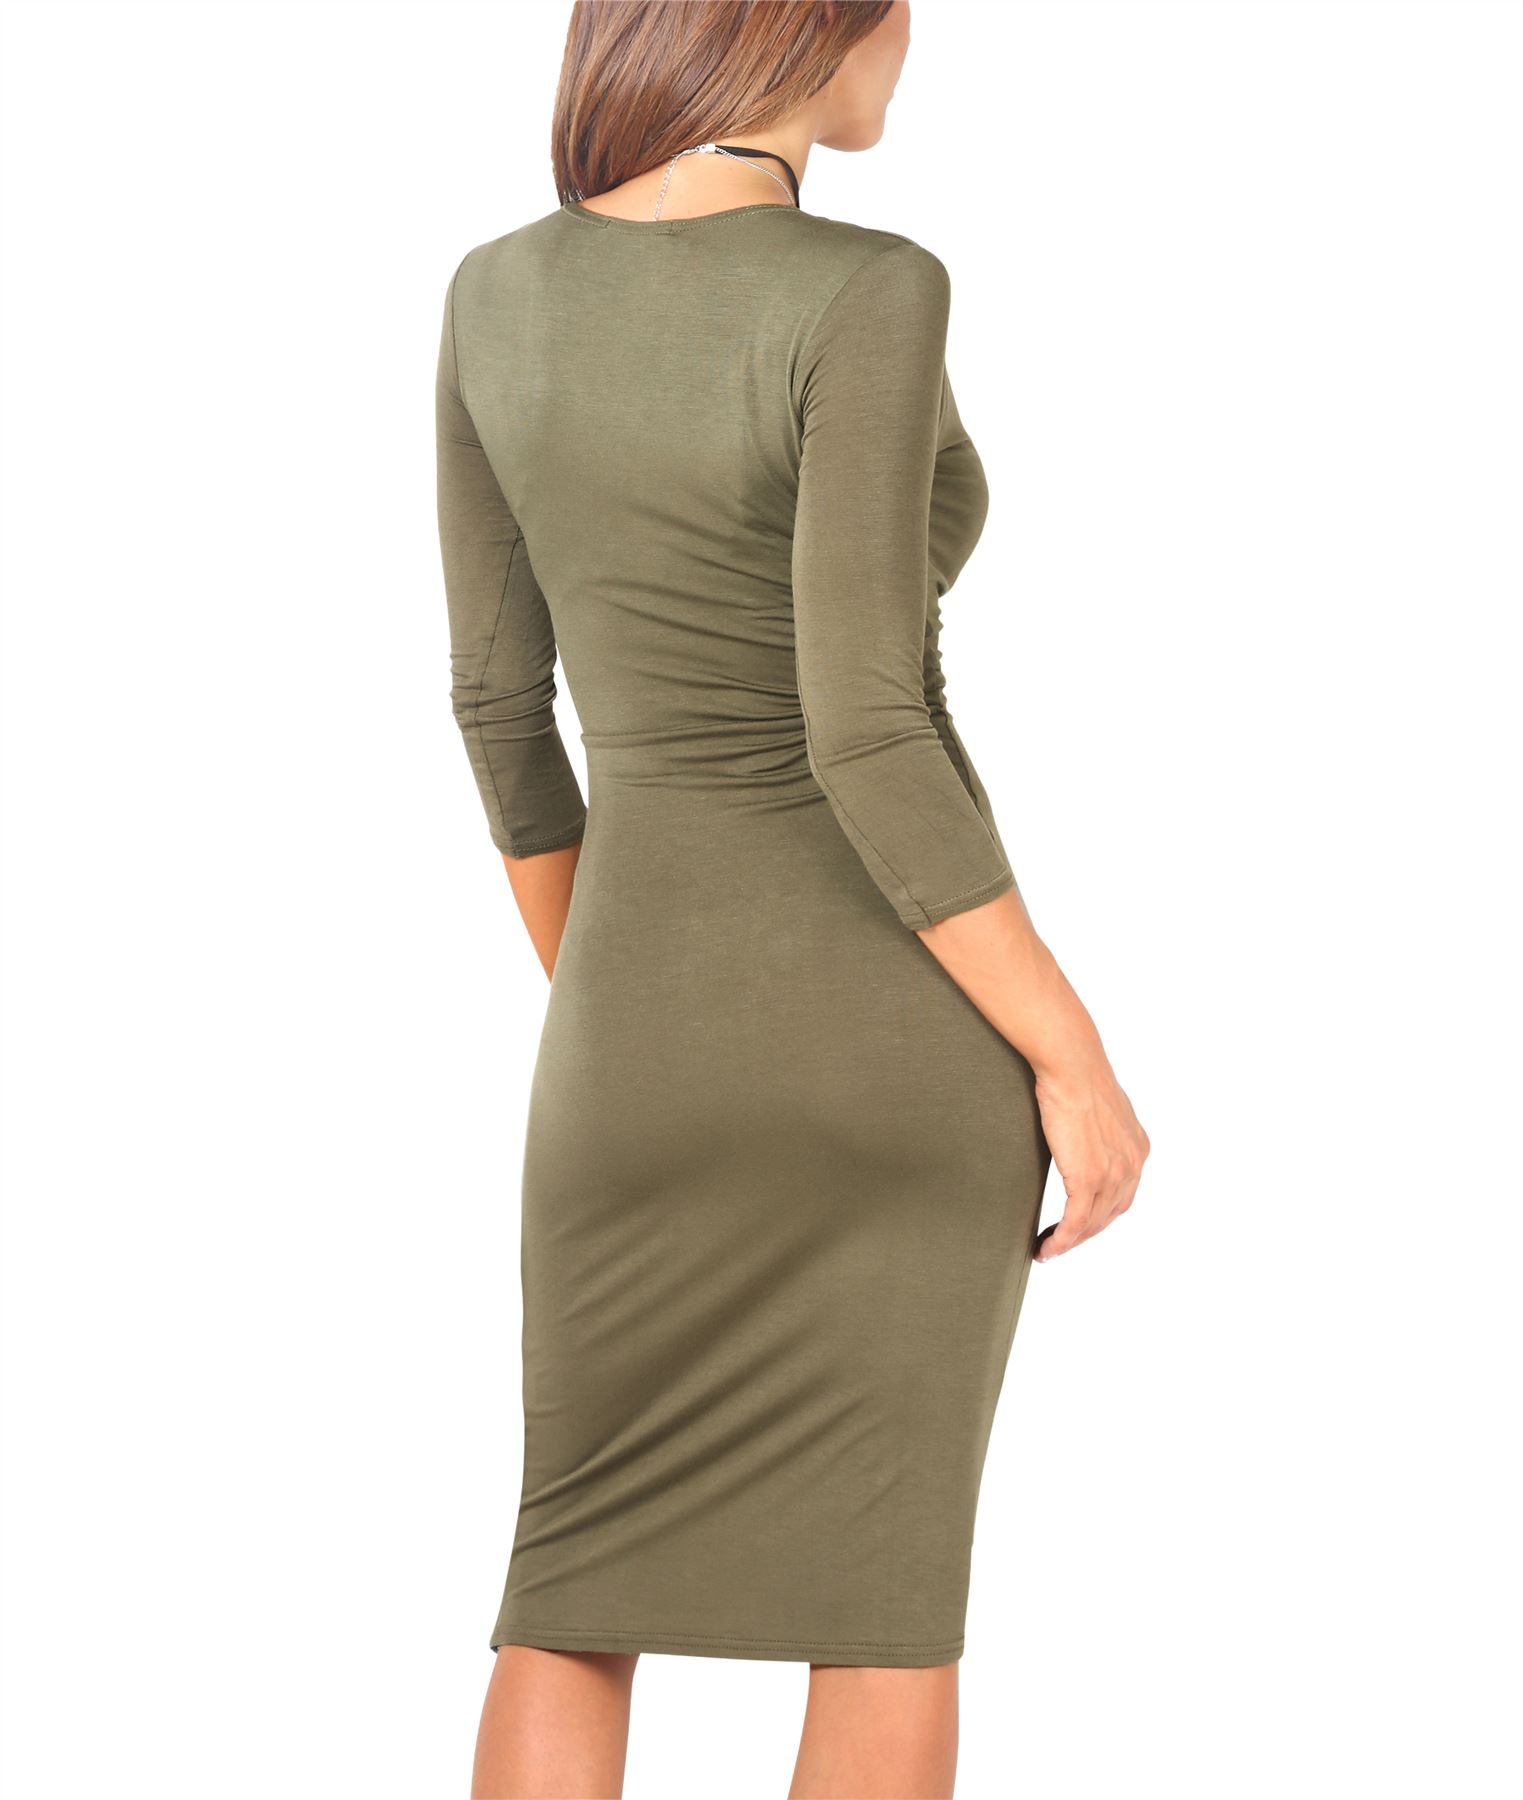 Womens-Ladies-Shift-Wrap-Dress-Midi-Knee-Long-Quarter-Sleeve-Sexy-Solid-Party thumbnail 13